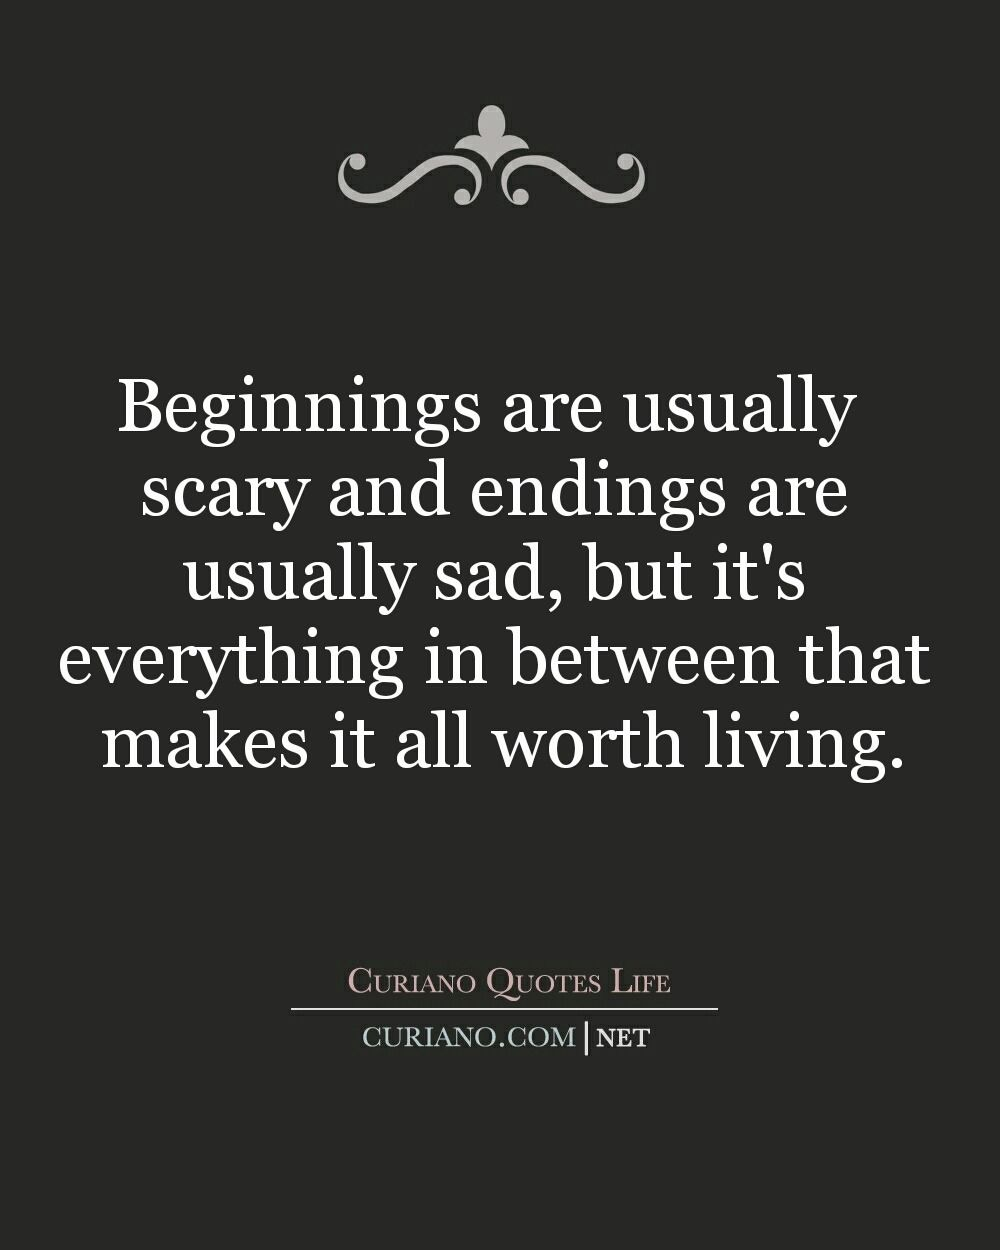 This blog curiano quotes life shows quotes best life quote life this blog curiano quotes life shows quotes best life quote life quotes altavistaventures Image collections